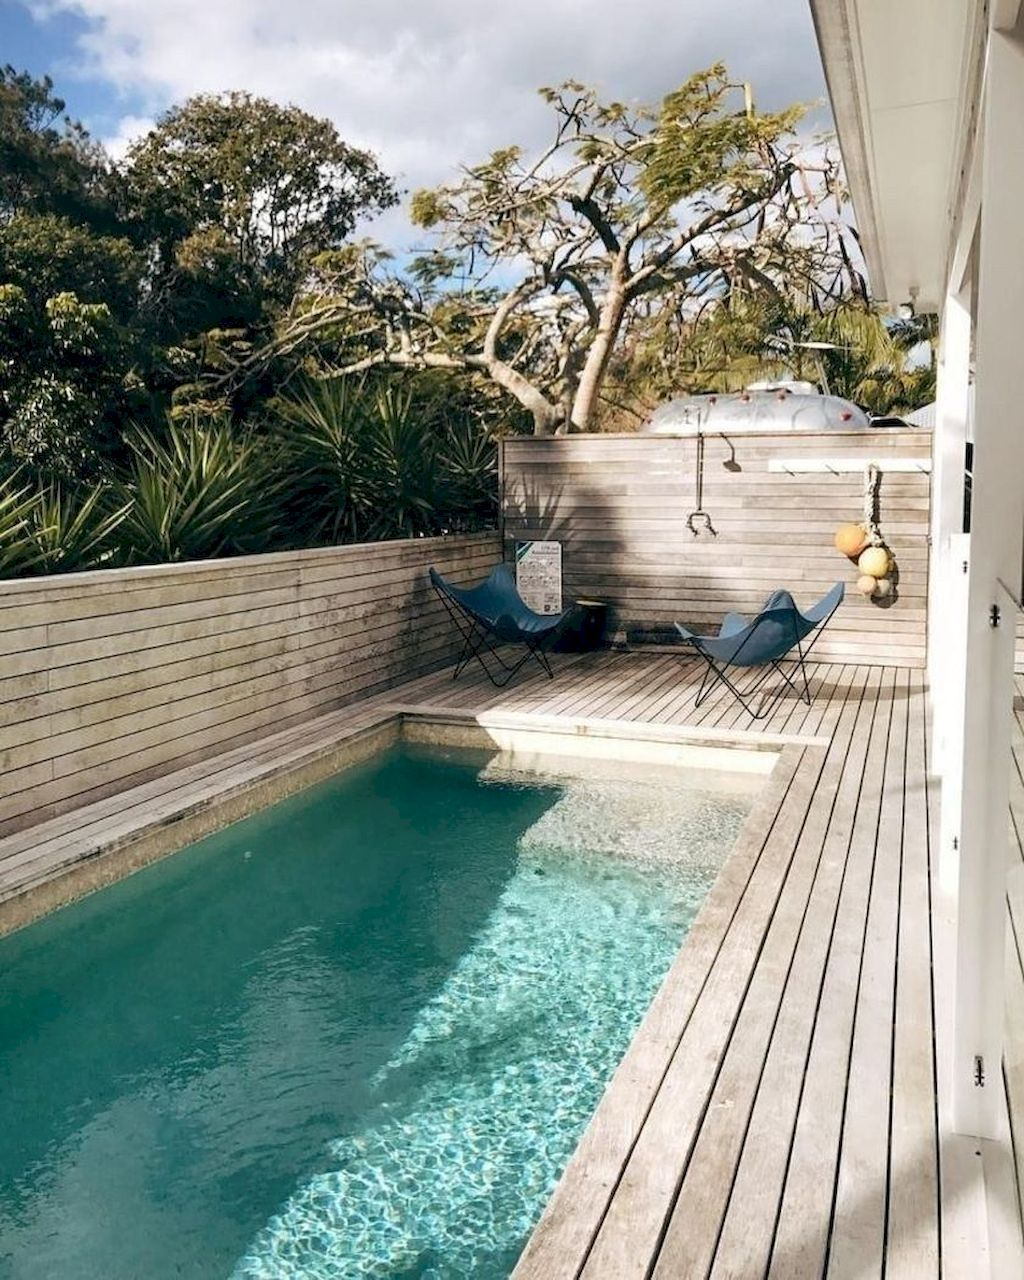 Implausible Swimming Pool Designs Beautiful And Enjoyment Small Pool Design Backyard Pool Landscaping Pool Landscaping